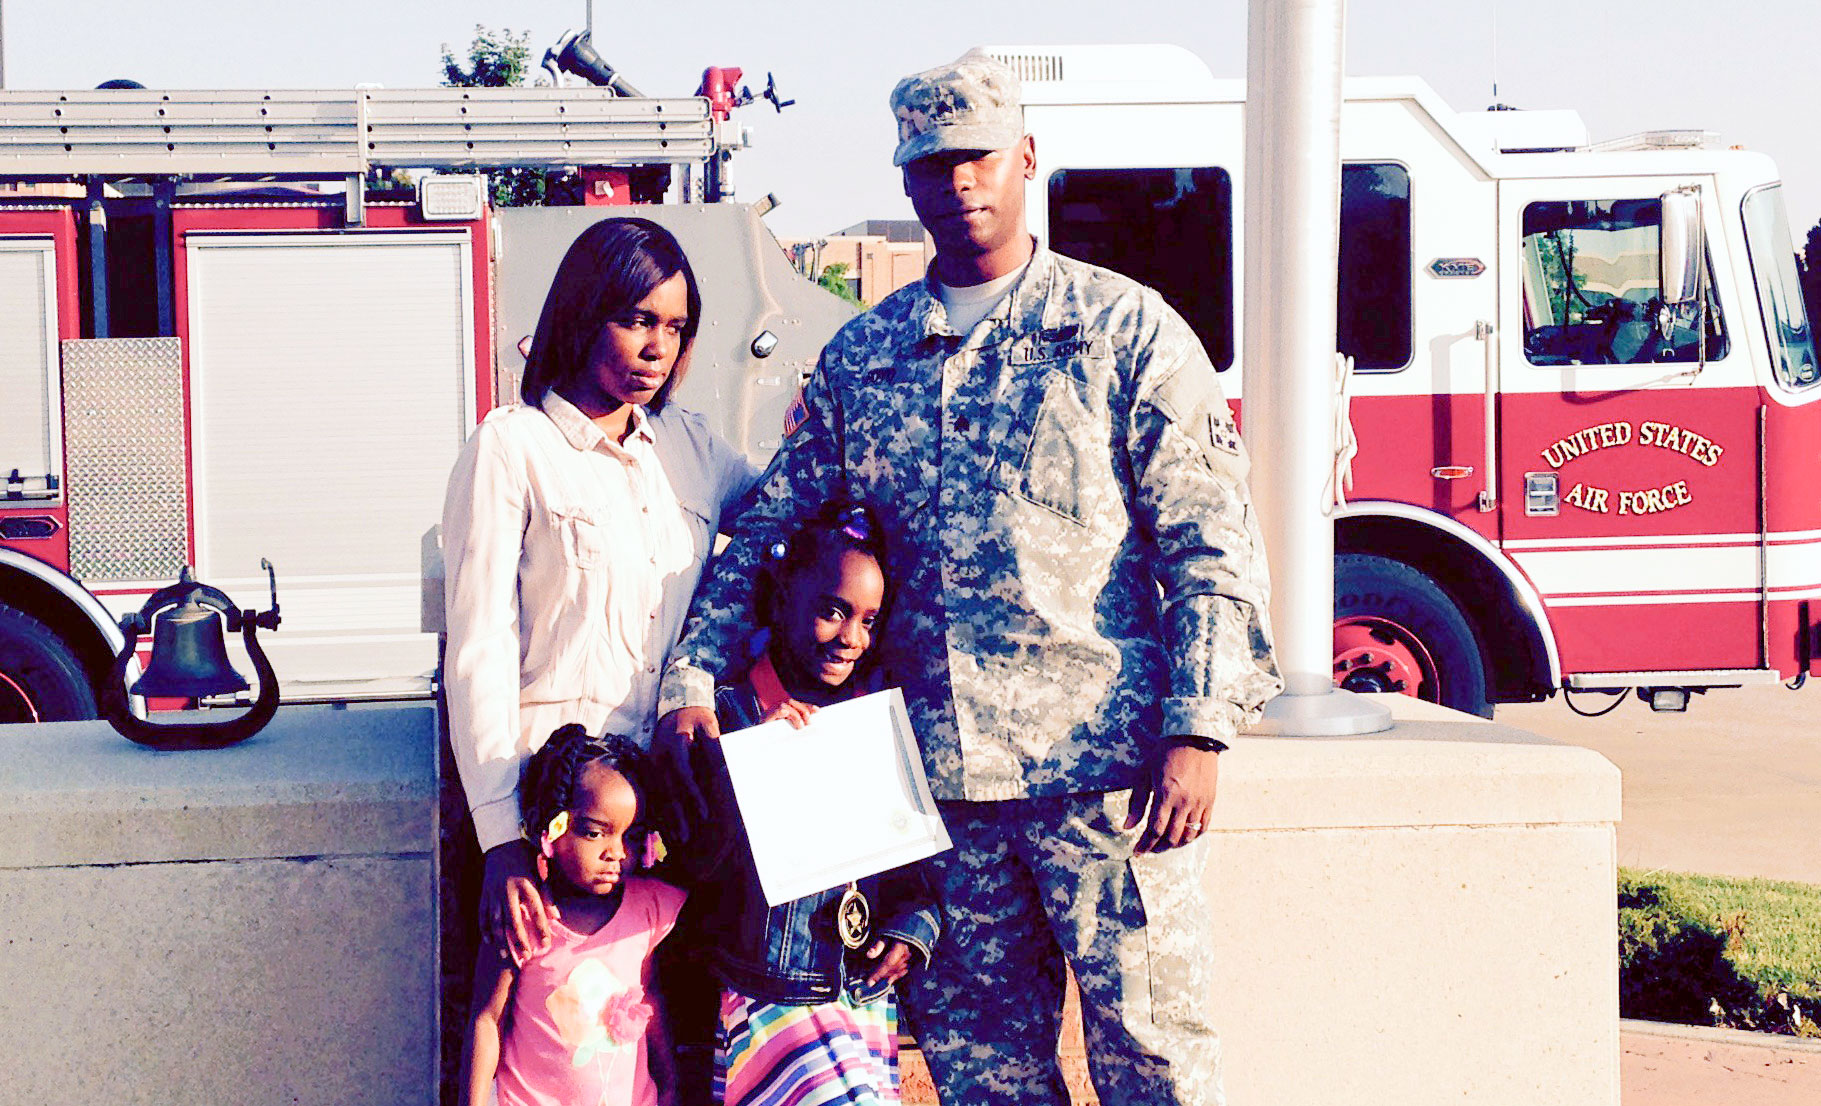 In a moment away from the spot light Sanyla Boyd is surrounded by sister Shaian, 3, mother Tranise and father, U.S. Army Sgt. Michael Boyd after receiving the inaugural 911 Award for Heroism by Peterson Air Force Base Fire Emergency Services on June 26, 2015. The award recognized her calm in the face of an emergency when her mother collapsed with chest pain May 14, 2015. Her quick action probably saved her mother's life. (U.S. Air Force photo by Dave Smith)